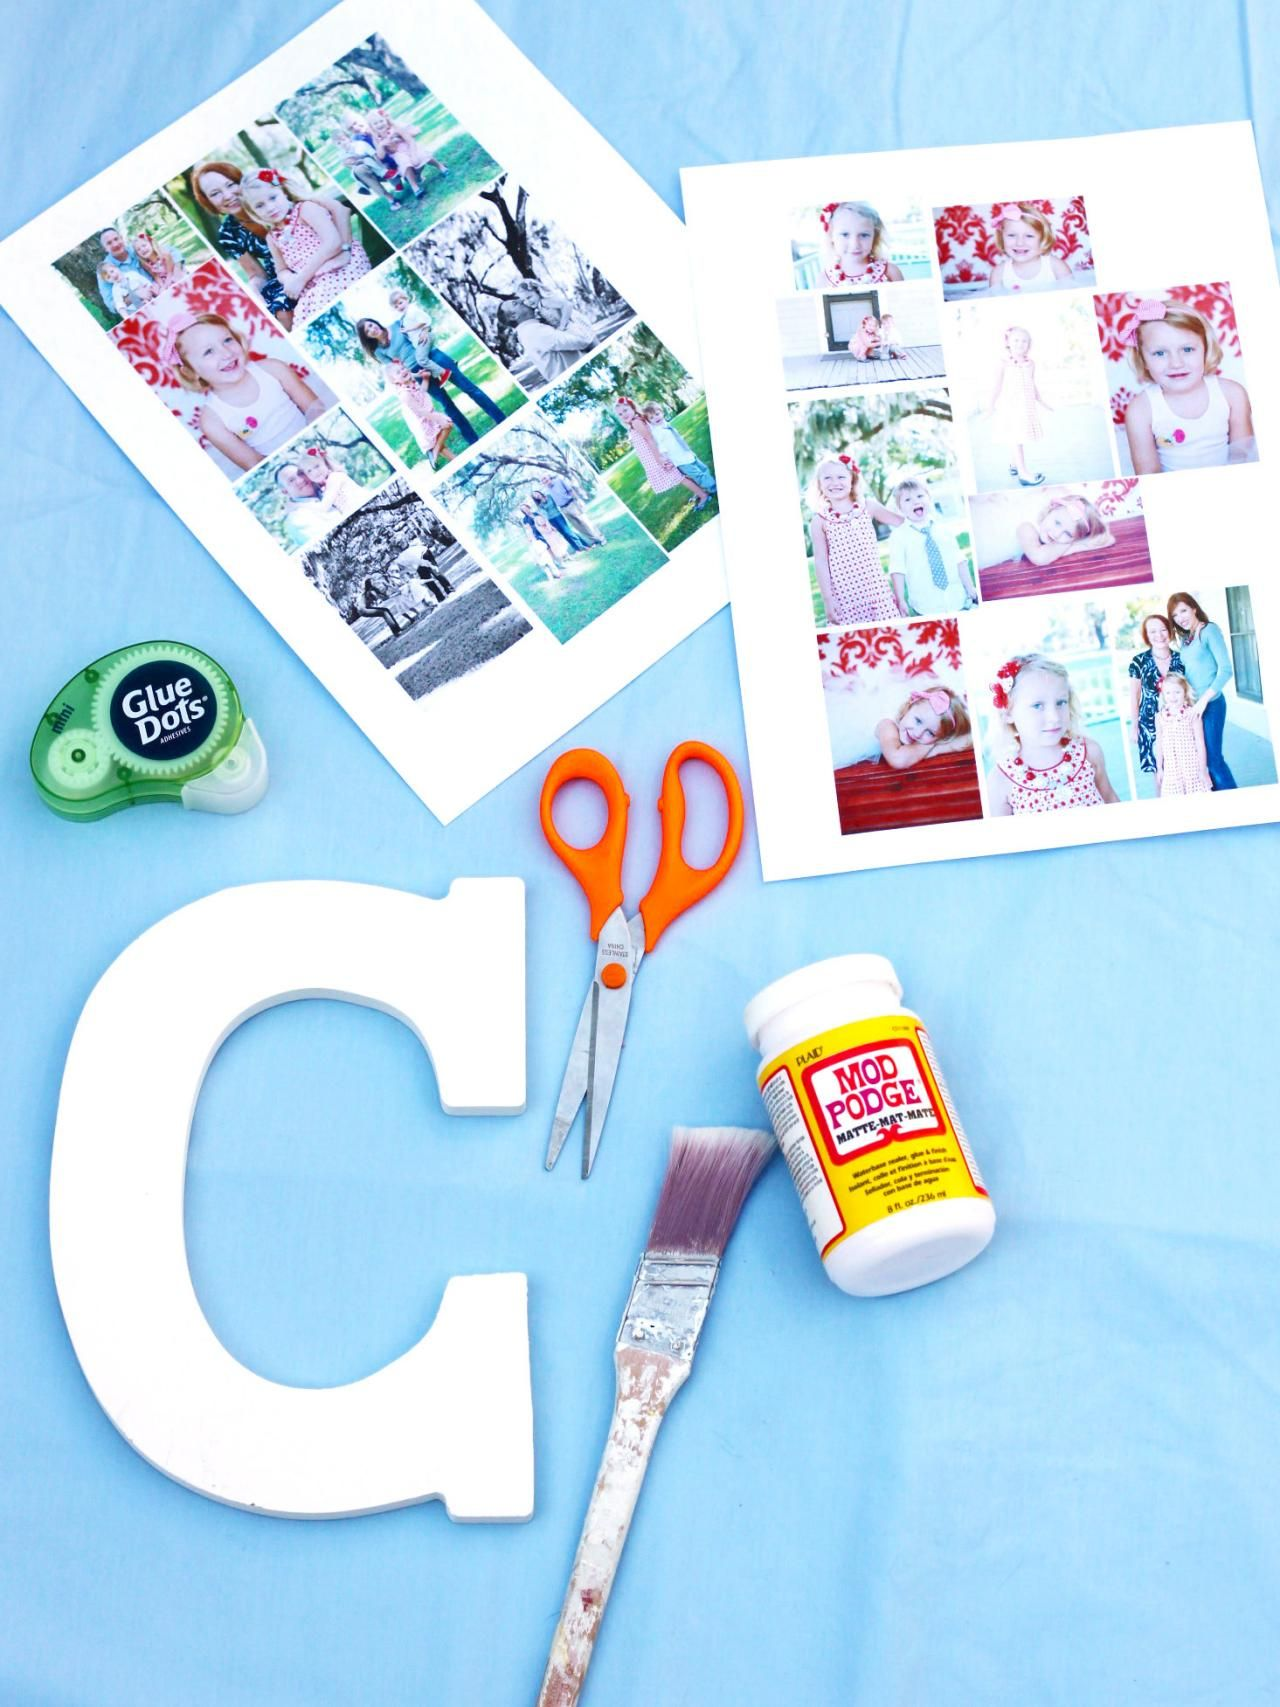 How to Make a Photo Collage on a Big Letter Make a photo